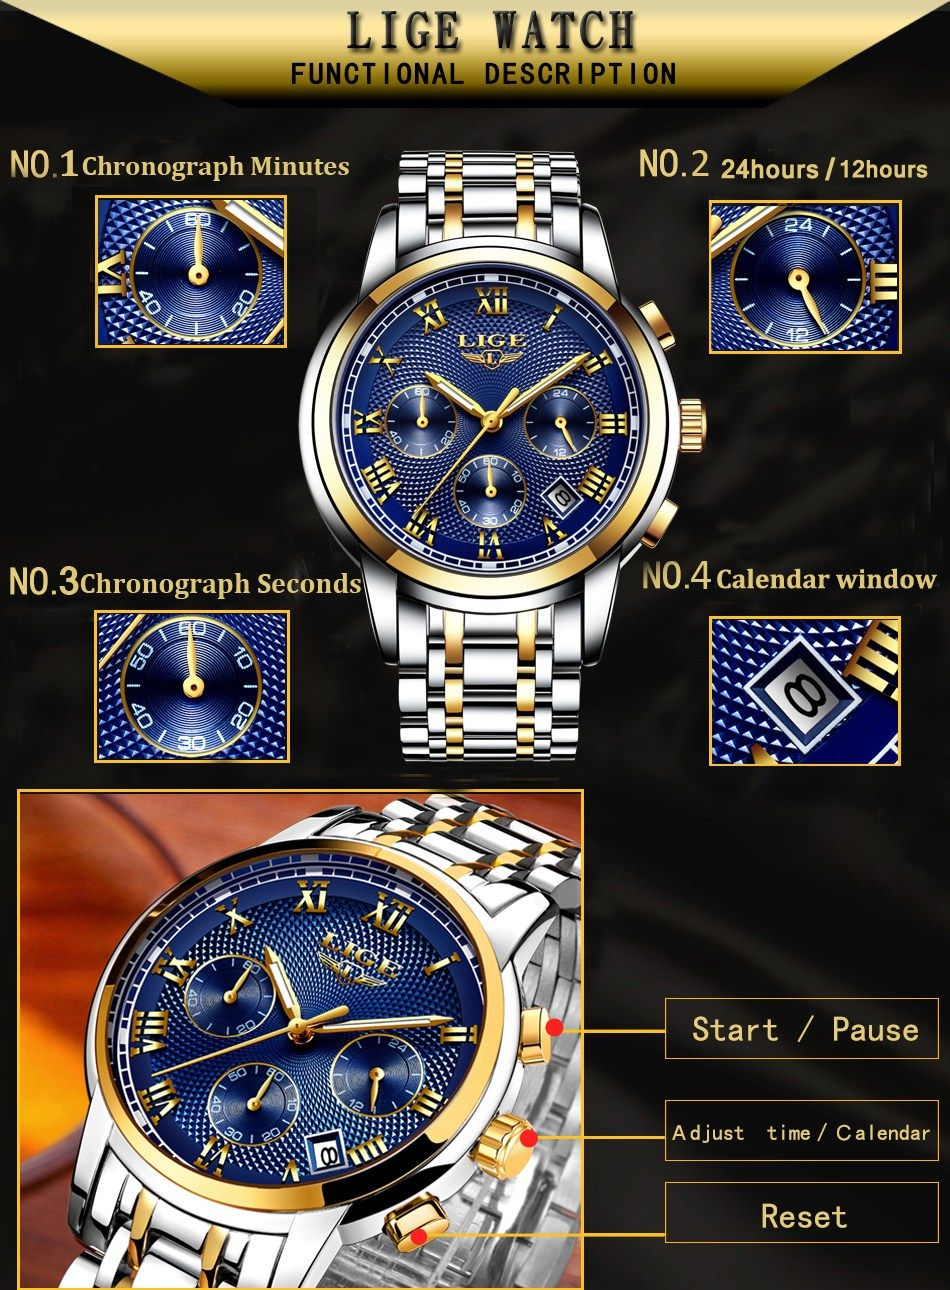 10507f36b0b Luxury and fashionable LIGE Chronograph Wrist Watch for men. bd watch price